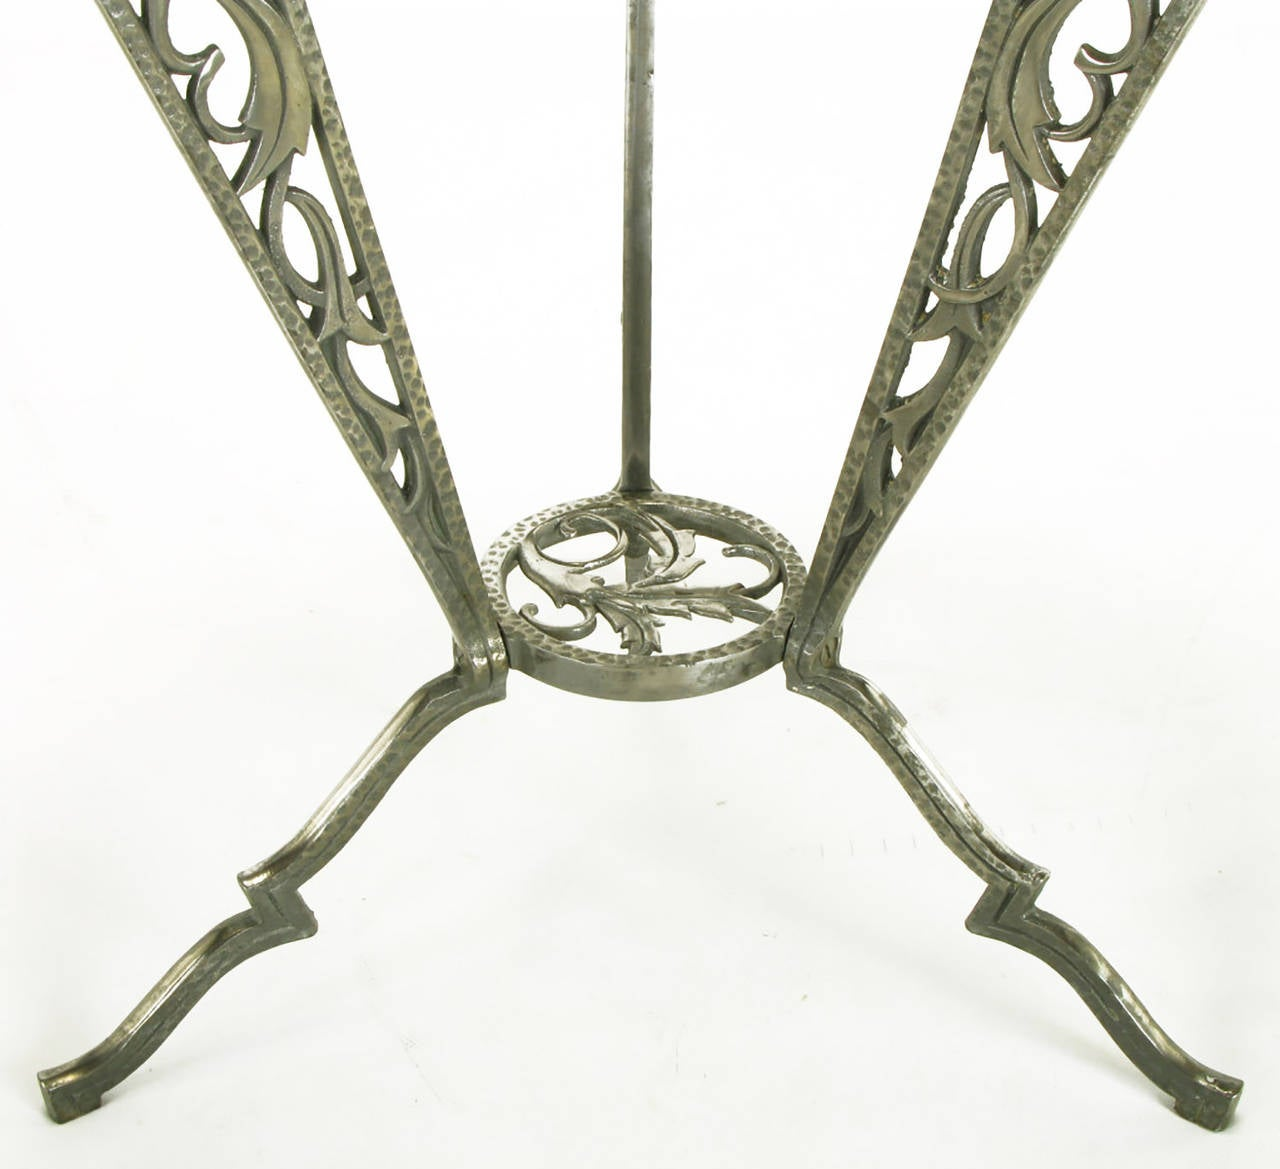 Rena Rosenthal Cast Metal Art Deco Table For Sale 1